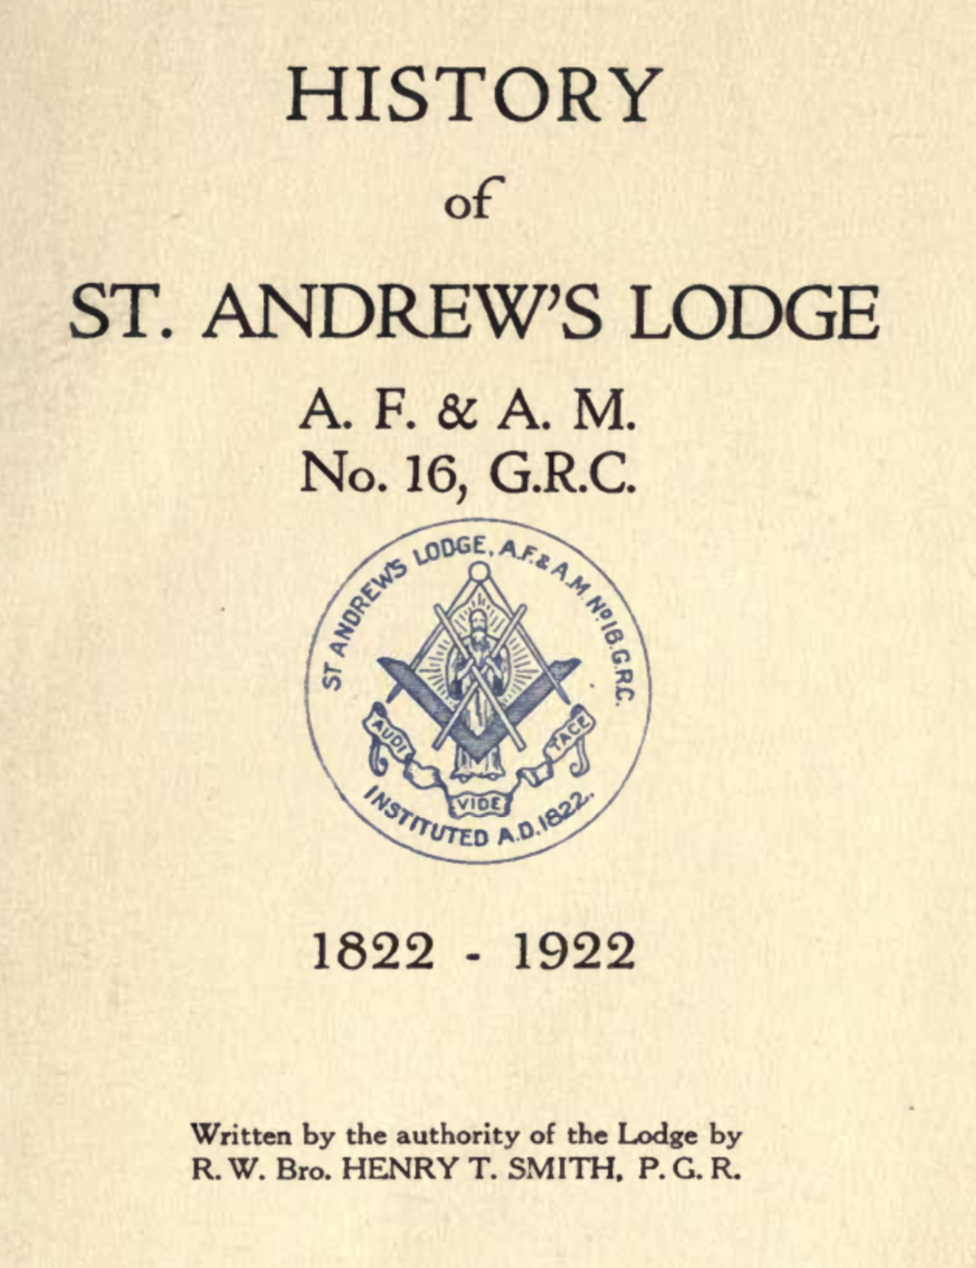 History of St andrews Lodge - H Smith - 1822-1922.pdf (page 1 of 247) 2019-01-26 07-28-53